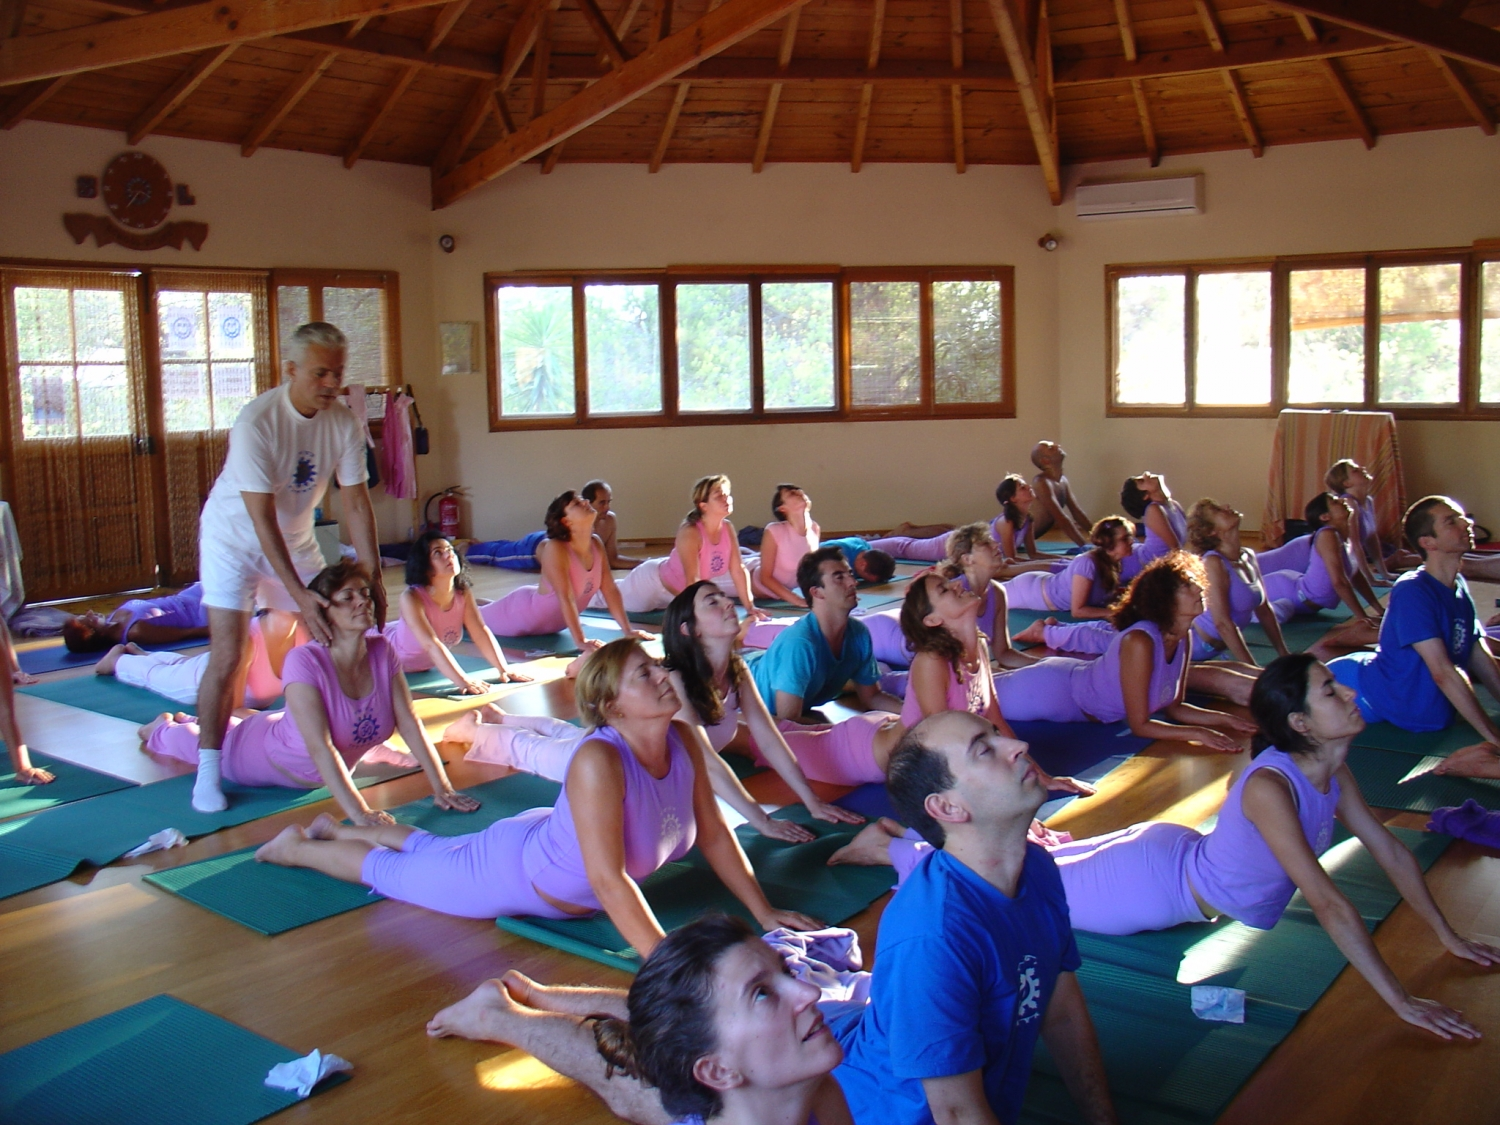 Semana Intensiva do Yoga - 2005 - Quinta da Calma, Algarve